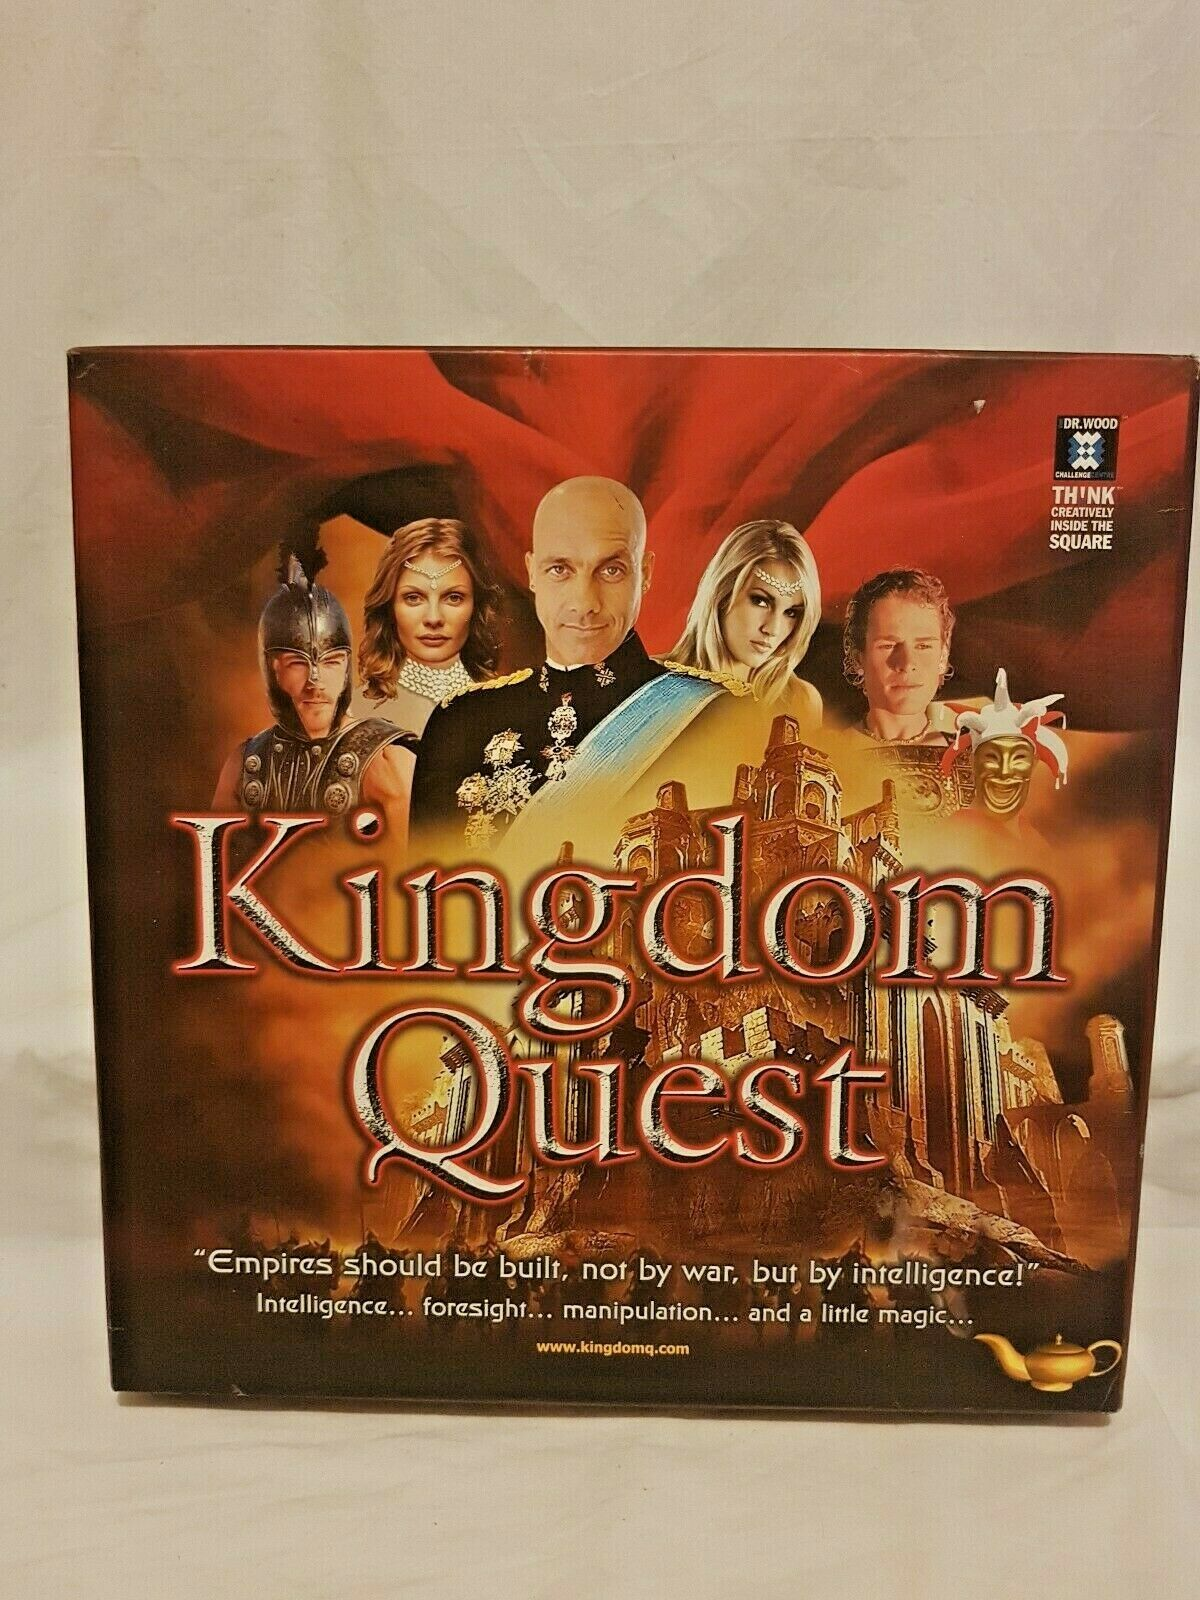 Kingdom Quest Strategic Puzzle Board Game Global Puzzles 2006 Aus Seller